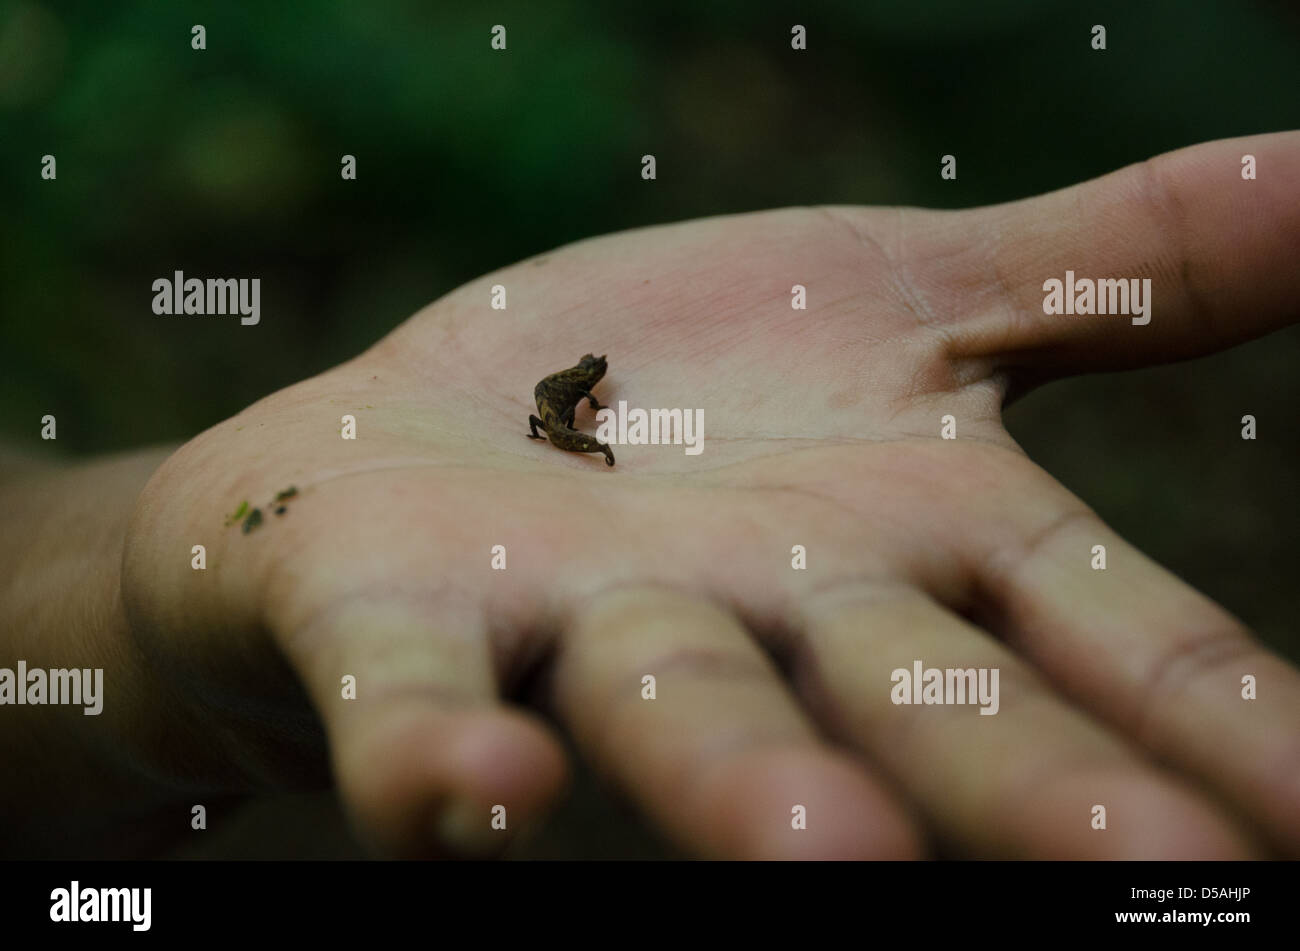 The world's smallest chameleon - Brookesia micra - found in the forest ground in Amber Mountain National Park, - Stock Image